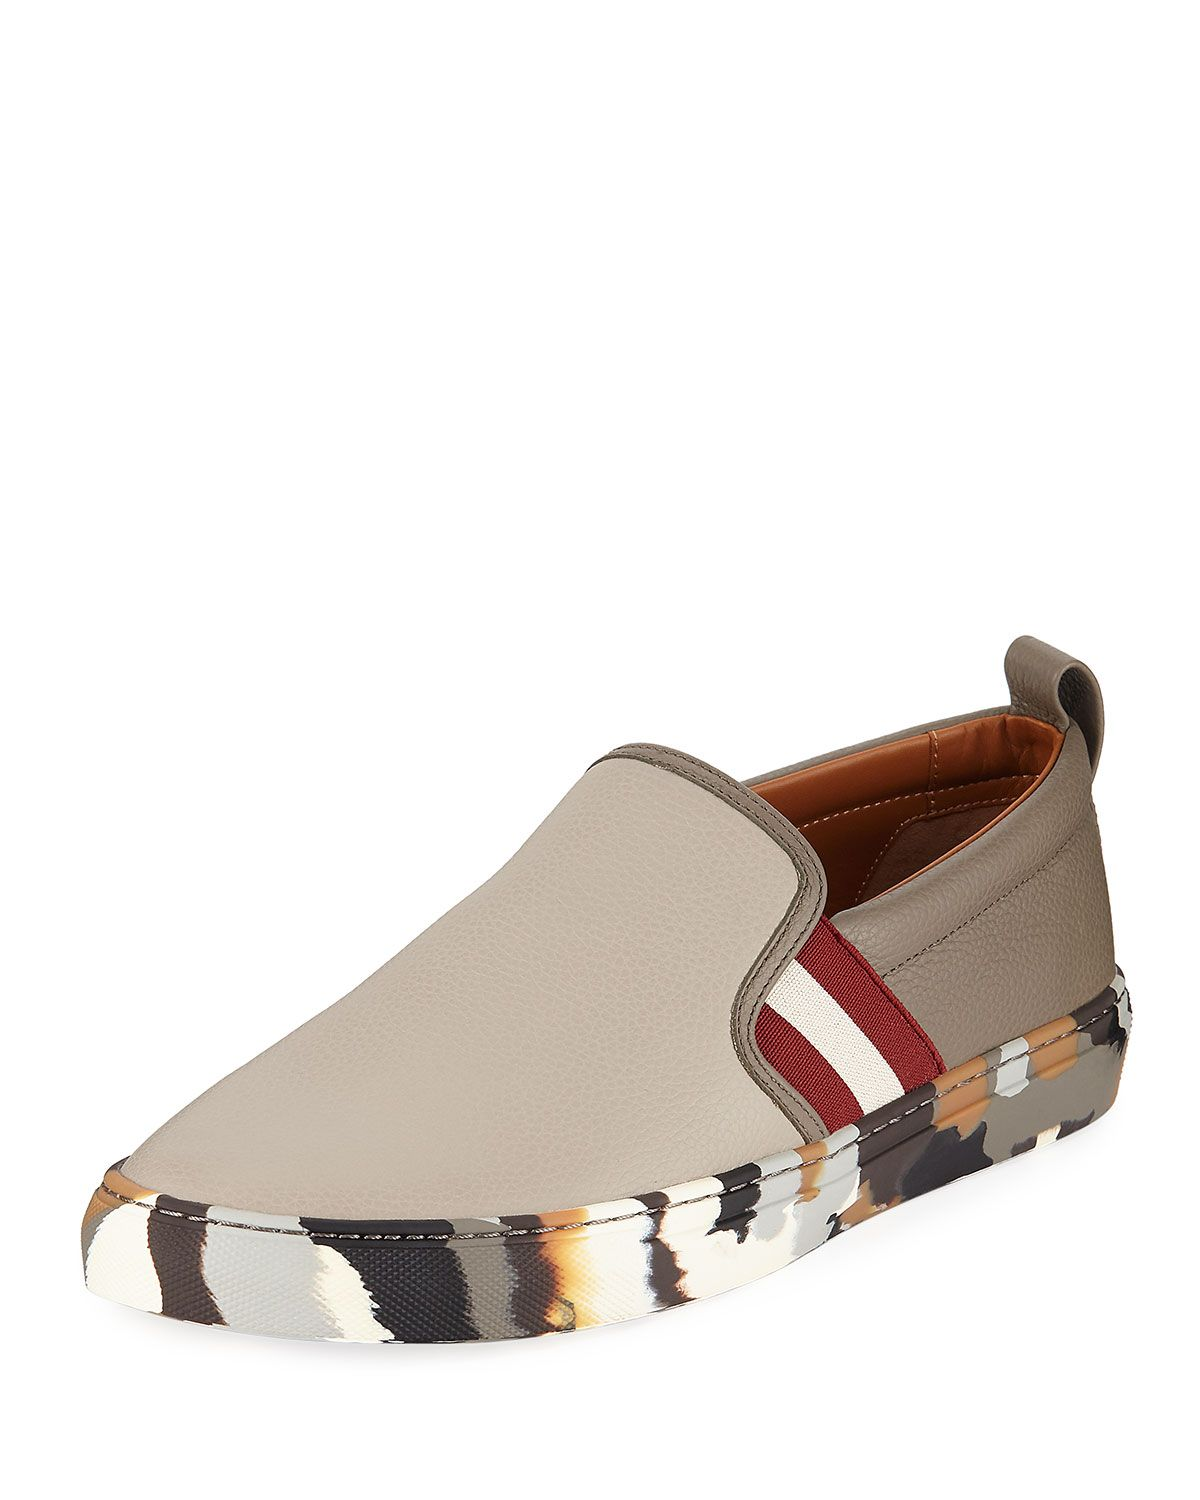 BALLY HERALD LEATHER SLIP-ON SNEAKERS